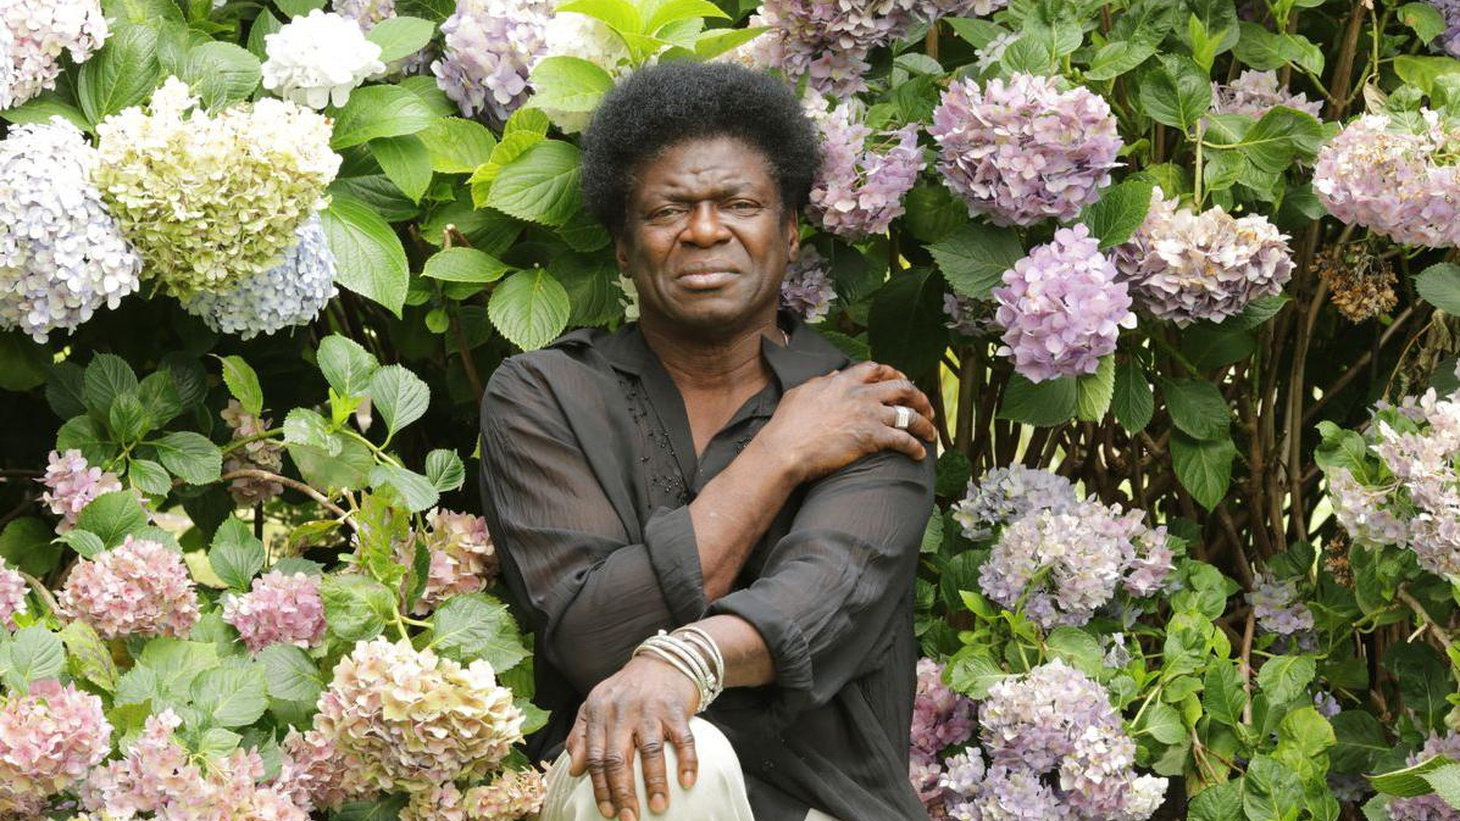 Charles Bradley released his debut recording at the unlikely age of 62 after many years on the club circuit. His follow-up captures the R&B singer's raw emotion...